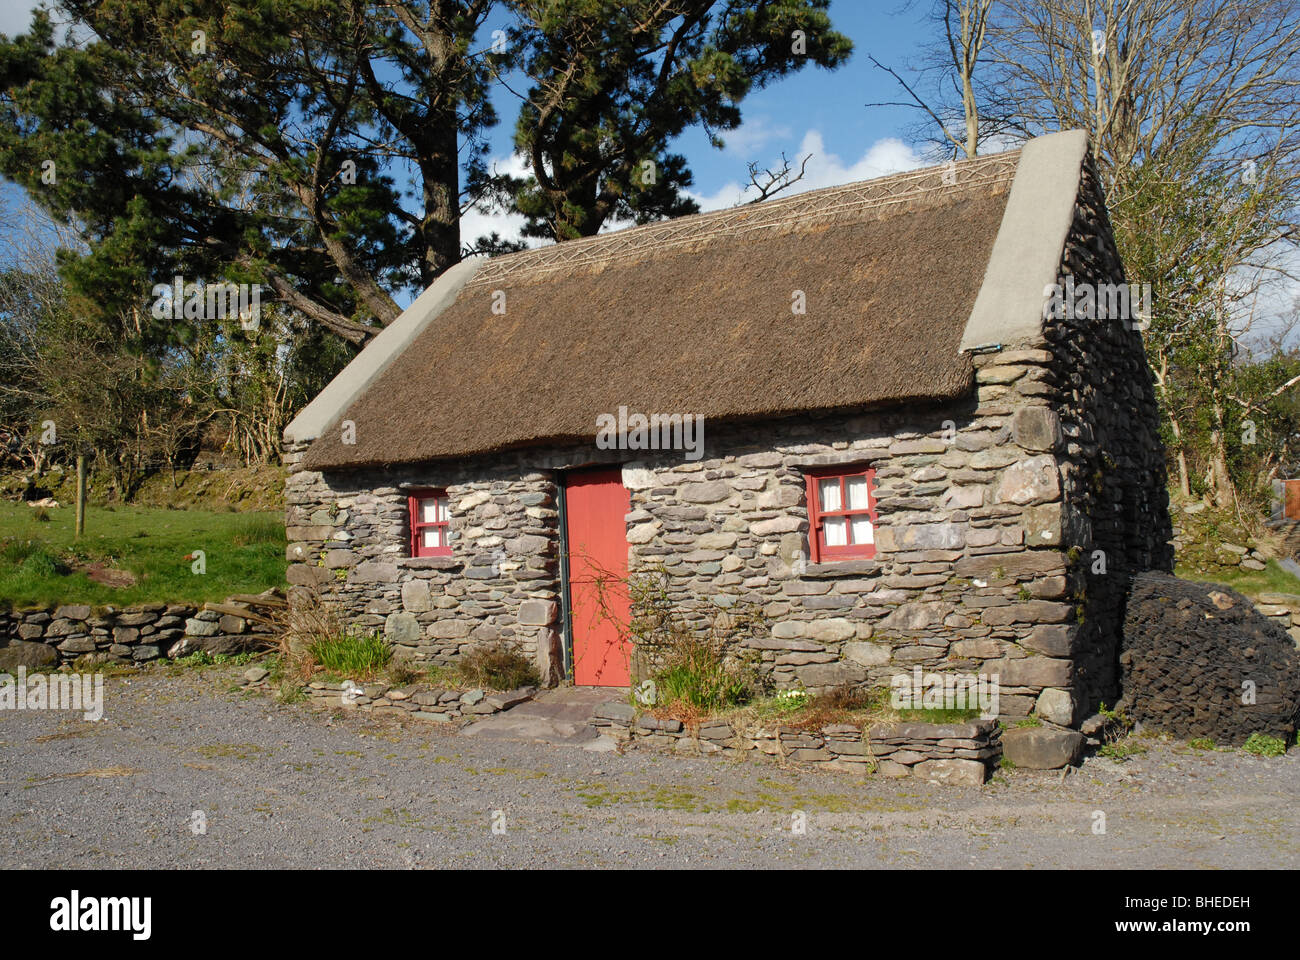 Irish Stone Houses Traditional Irish Stone Cottage With A Thatched Roof In